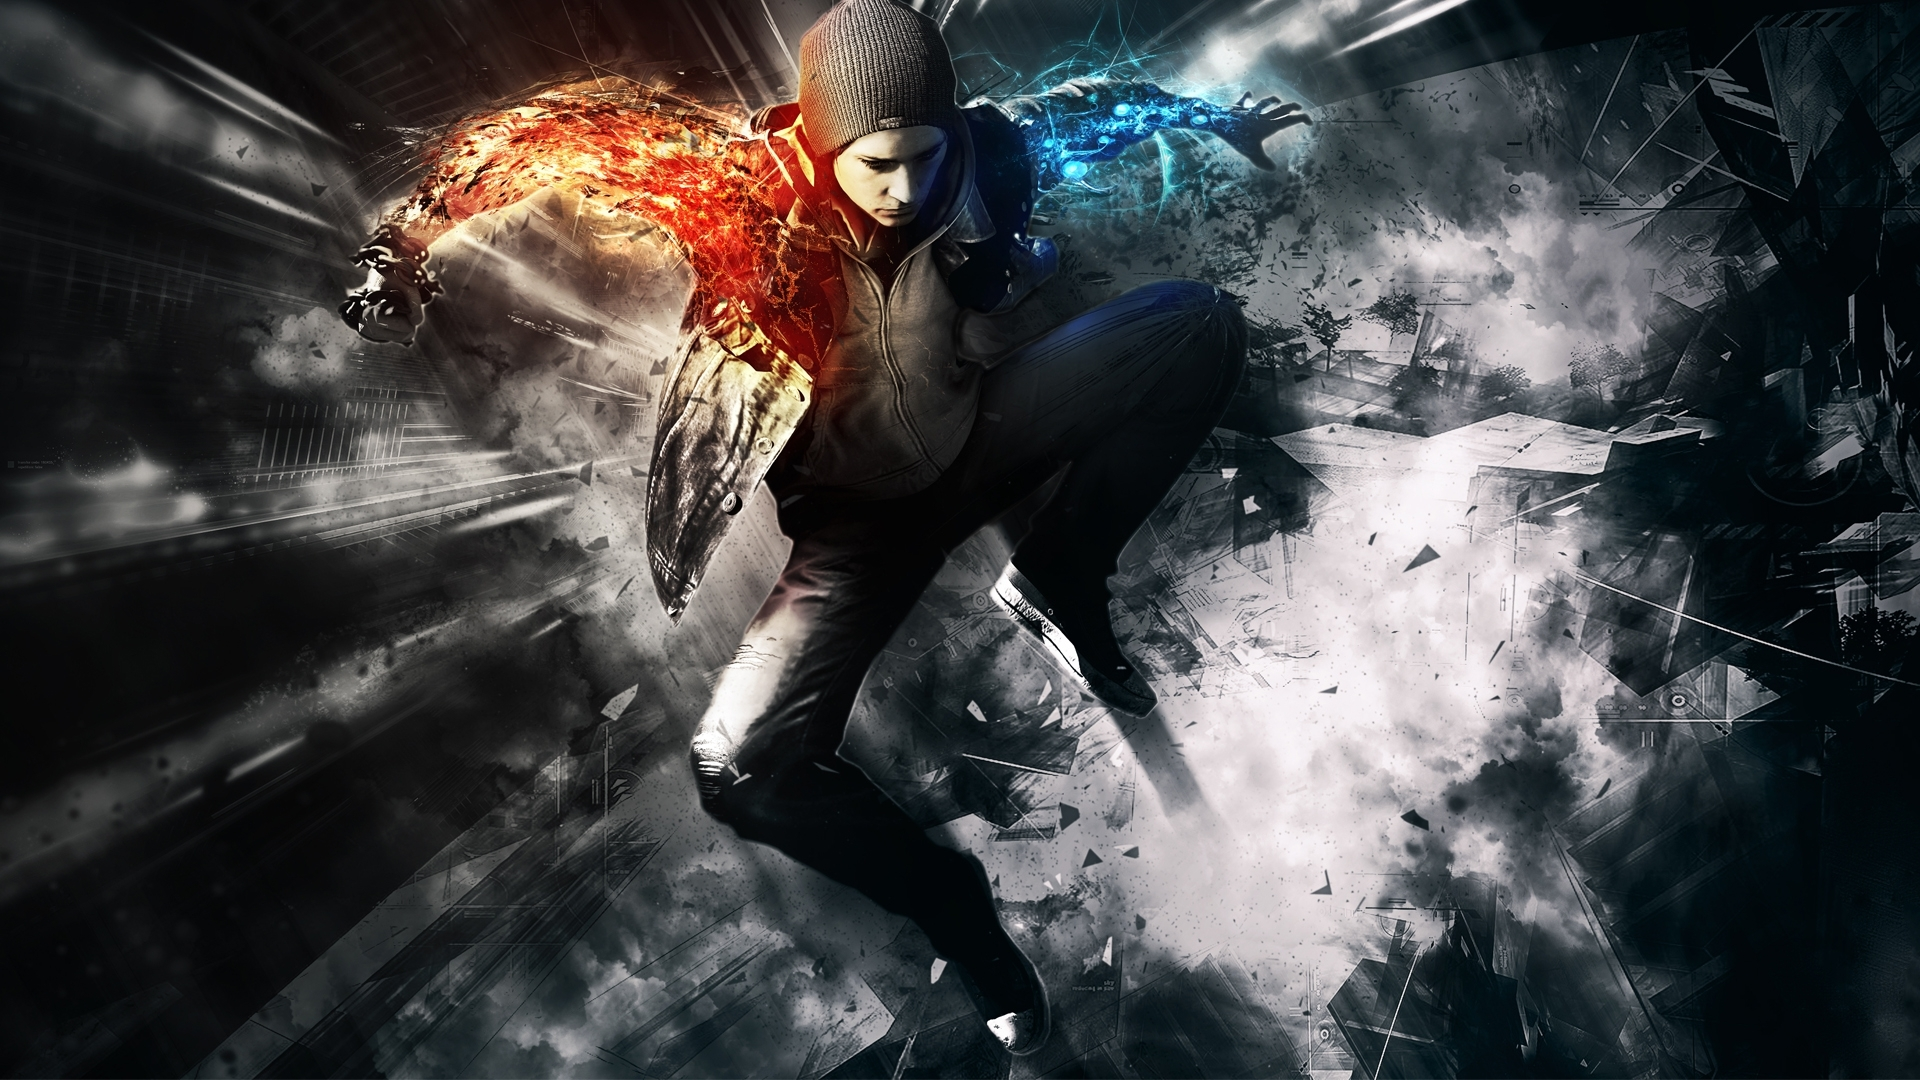 infamous second son wallpapers | best wallpapers